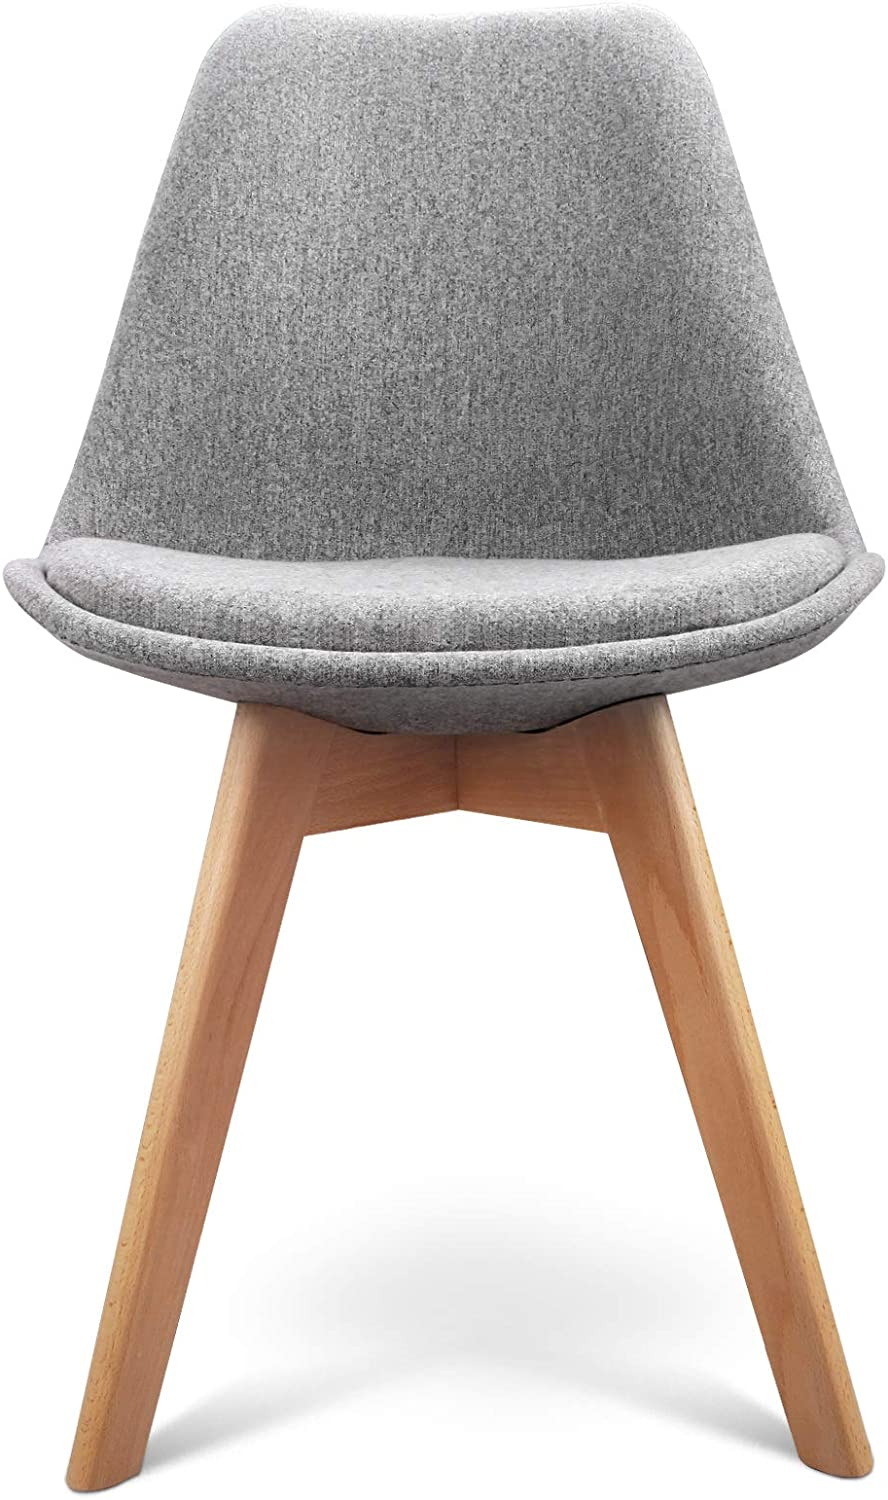 2 x Artiss Eames DSW Dining Chairs Wooden Fabric Upholstered Kitchen Chairs Grey